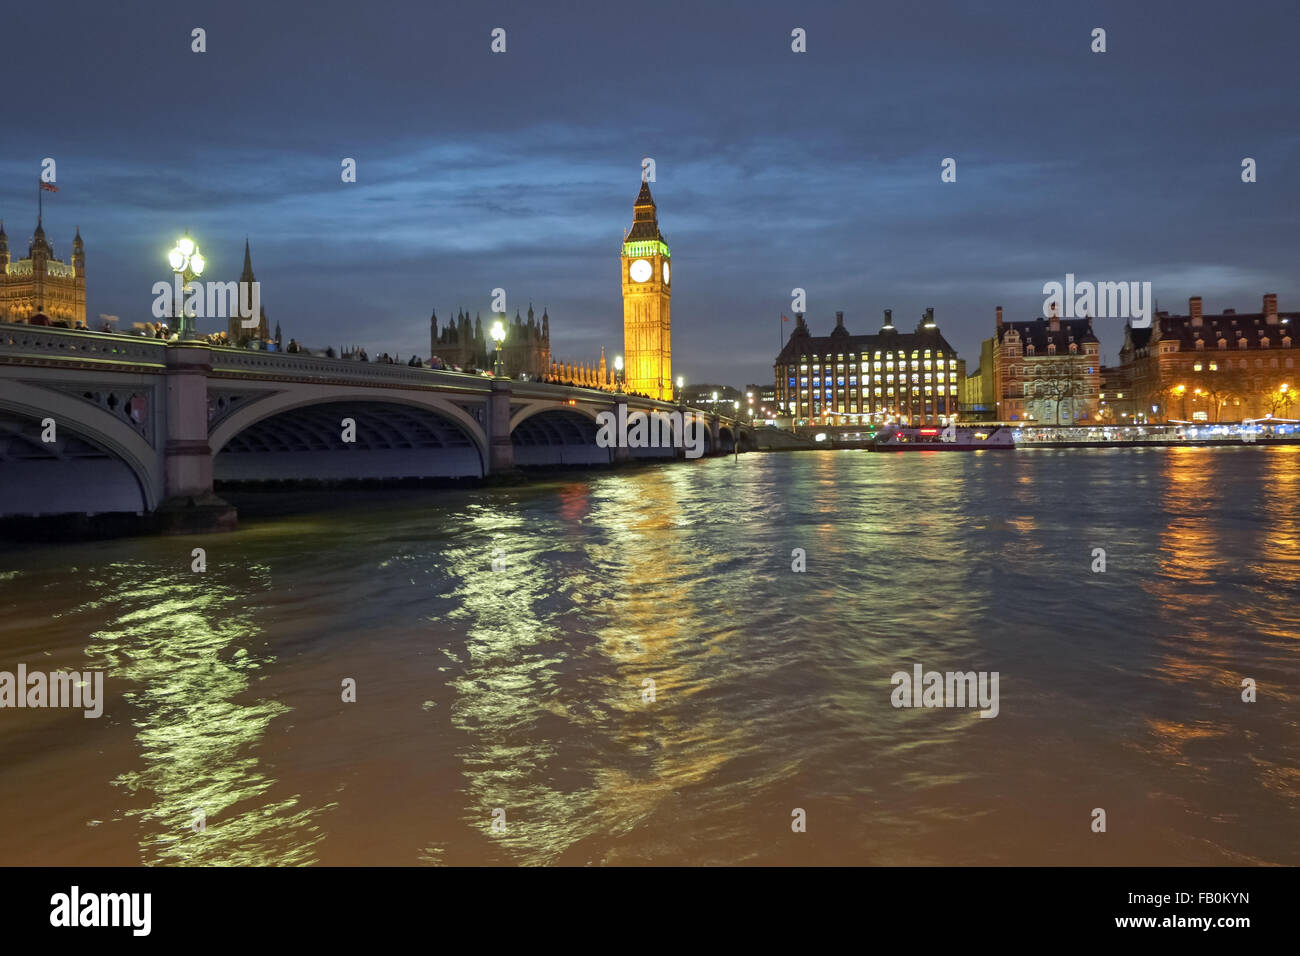 Il Big Ben e Westminster Bridge London Regno Unito Immagini Stock